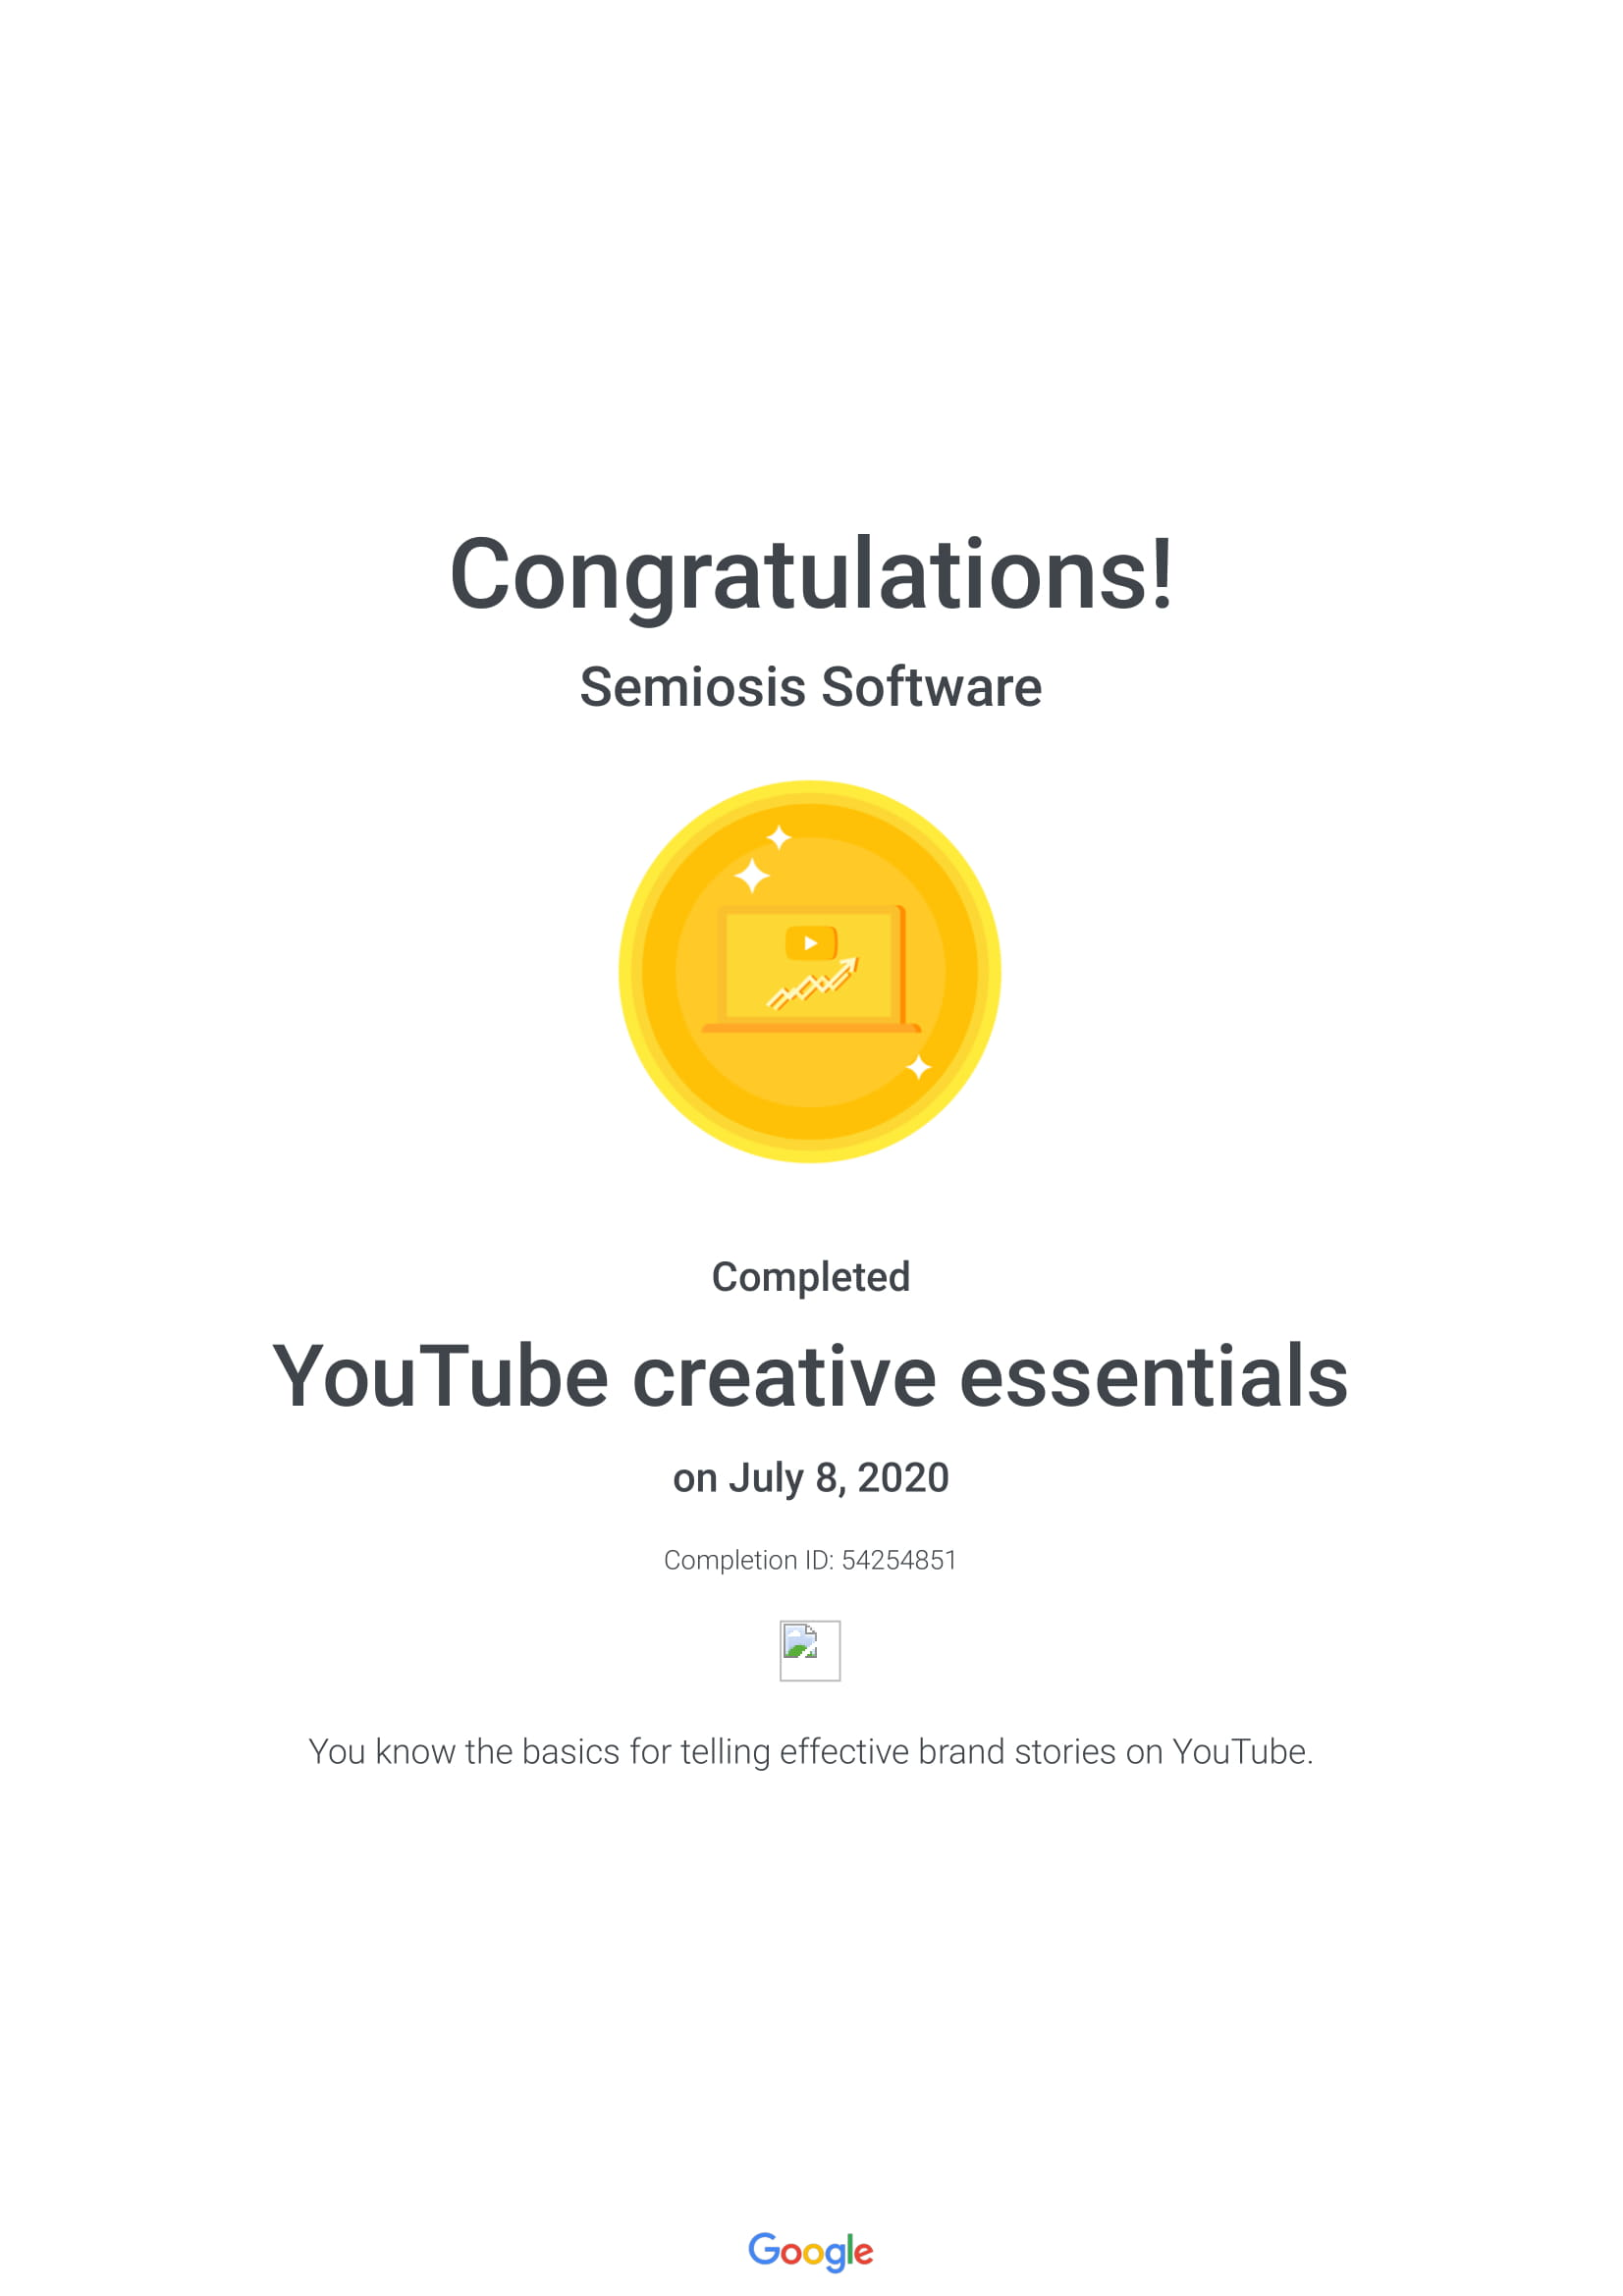 YouTube Creative Essentials